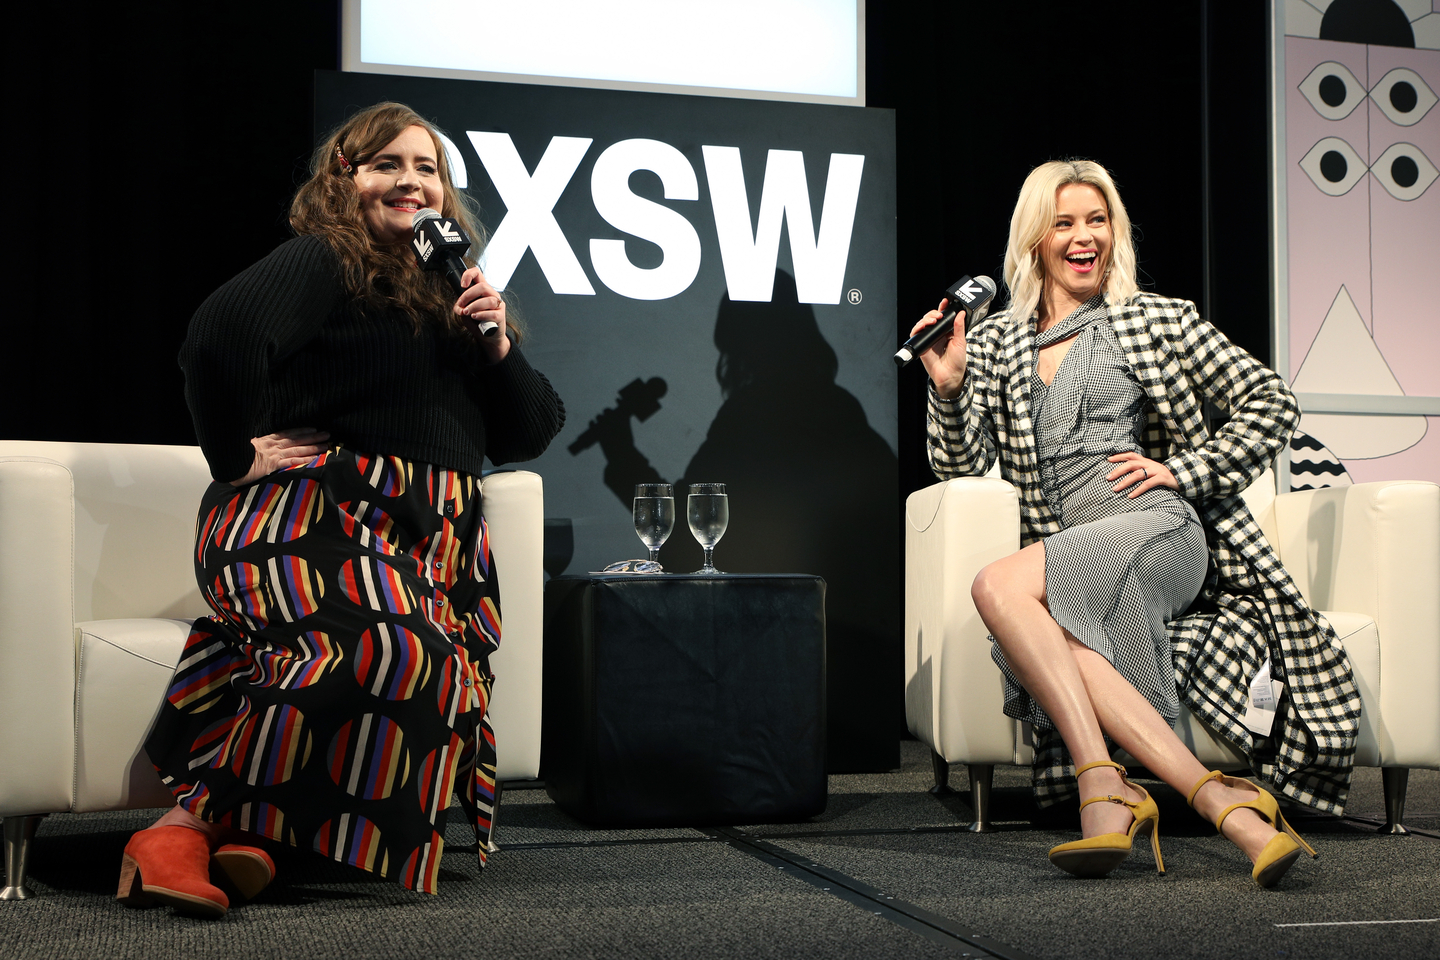 (L-R) Aidy Bryant and Elizabeth Banks speak onstage at their Featured Session: Elizabeth Banks with Aidy Bryant, talking about their new show Shrill. Photo by Mike Jordan/Getty Images for SXSW